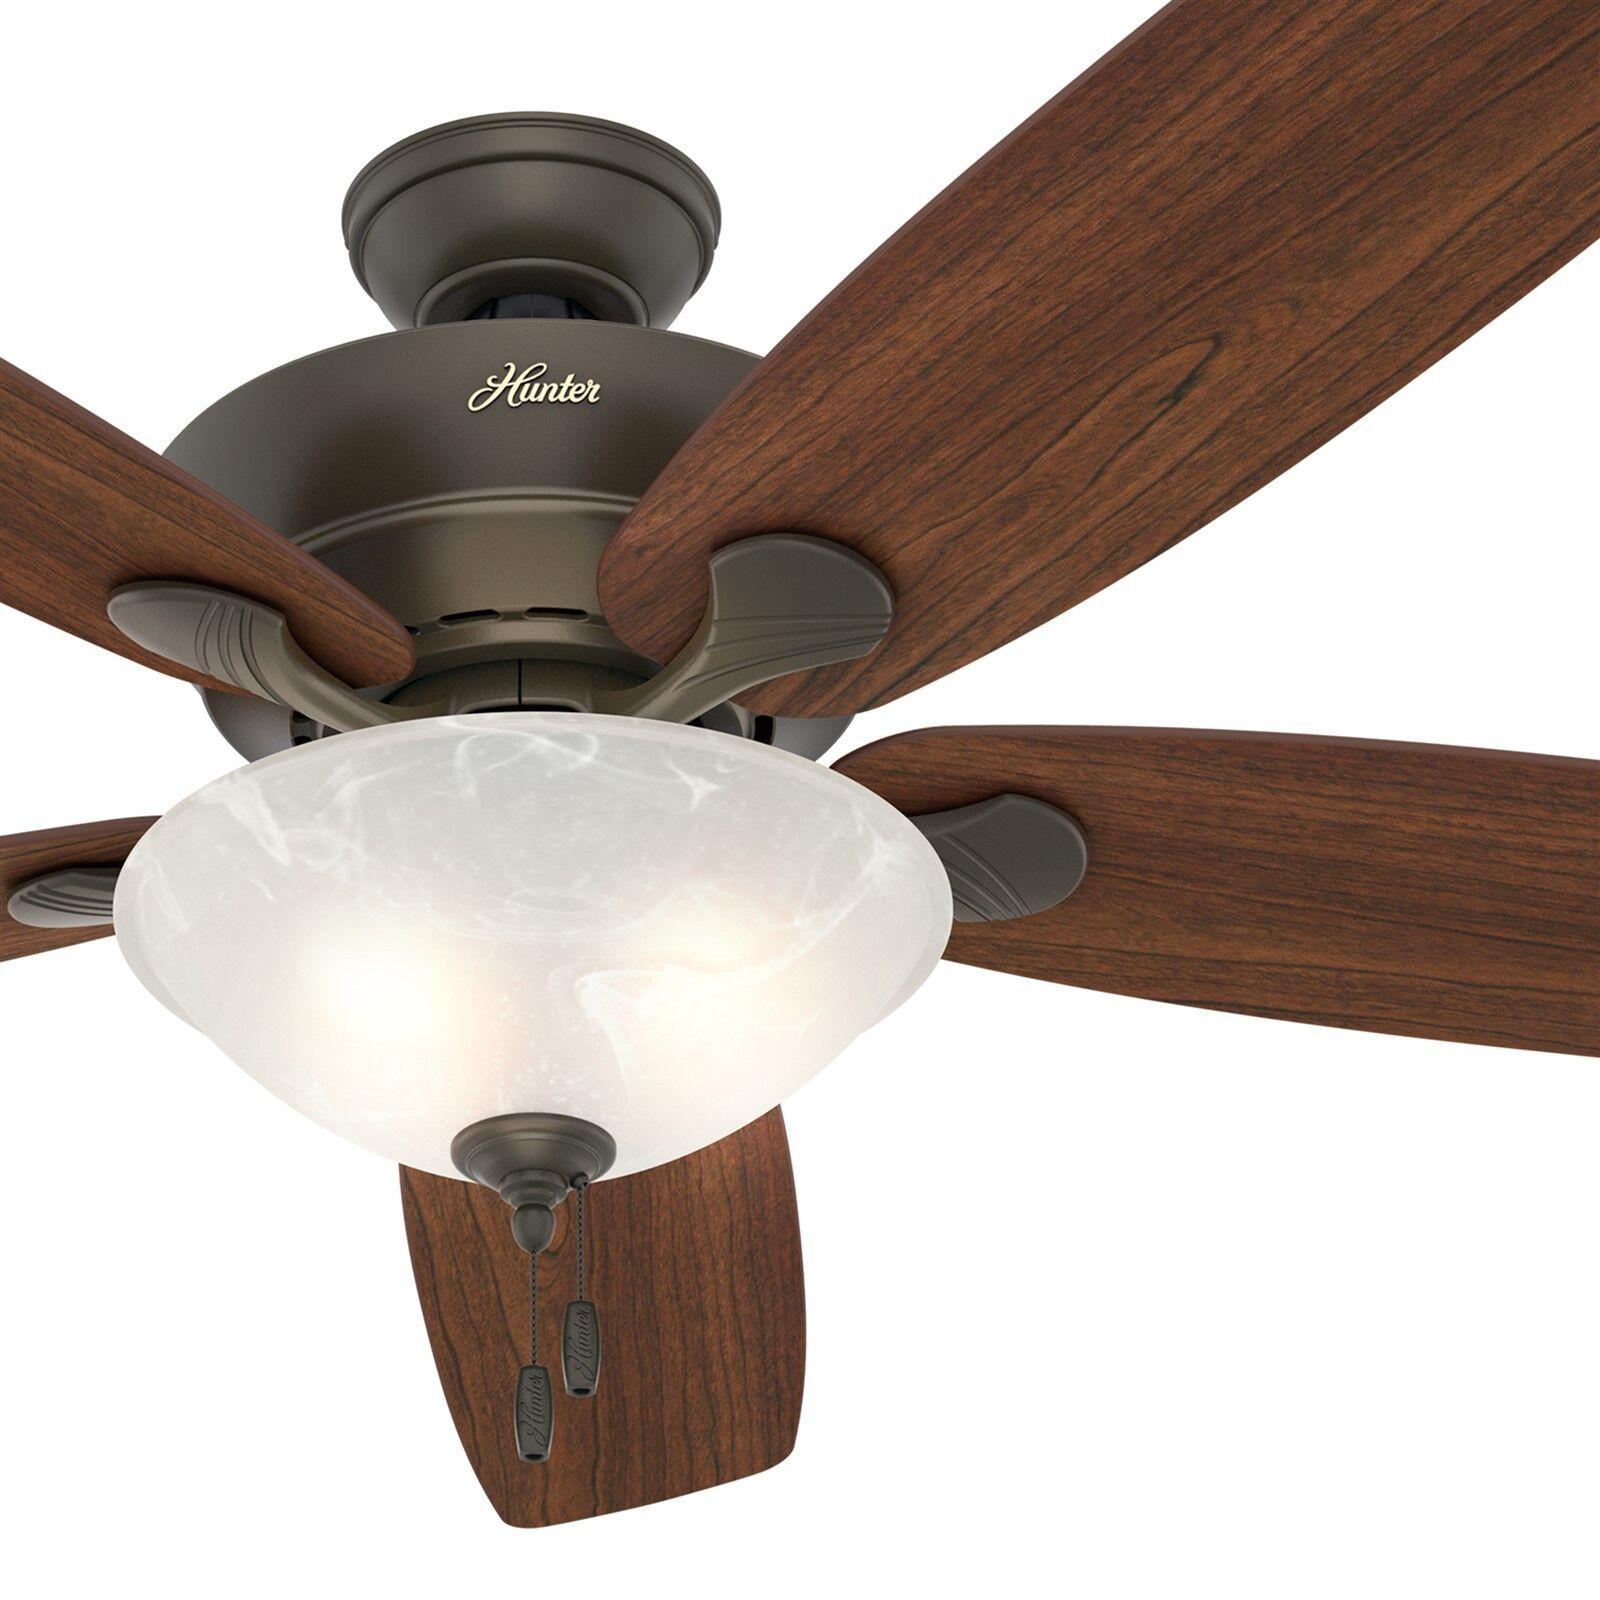 Hunter Fan Company Builder Great Room New Bronze Ceiling: Hunter Fan 60 In. New Bronze Ceiling Fan With Swirled